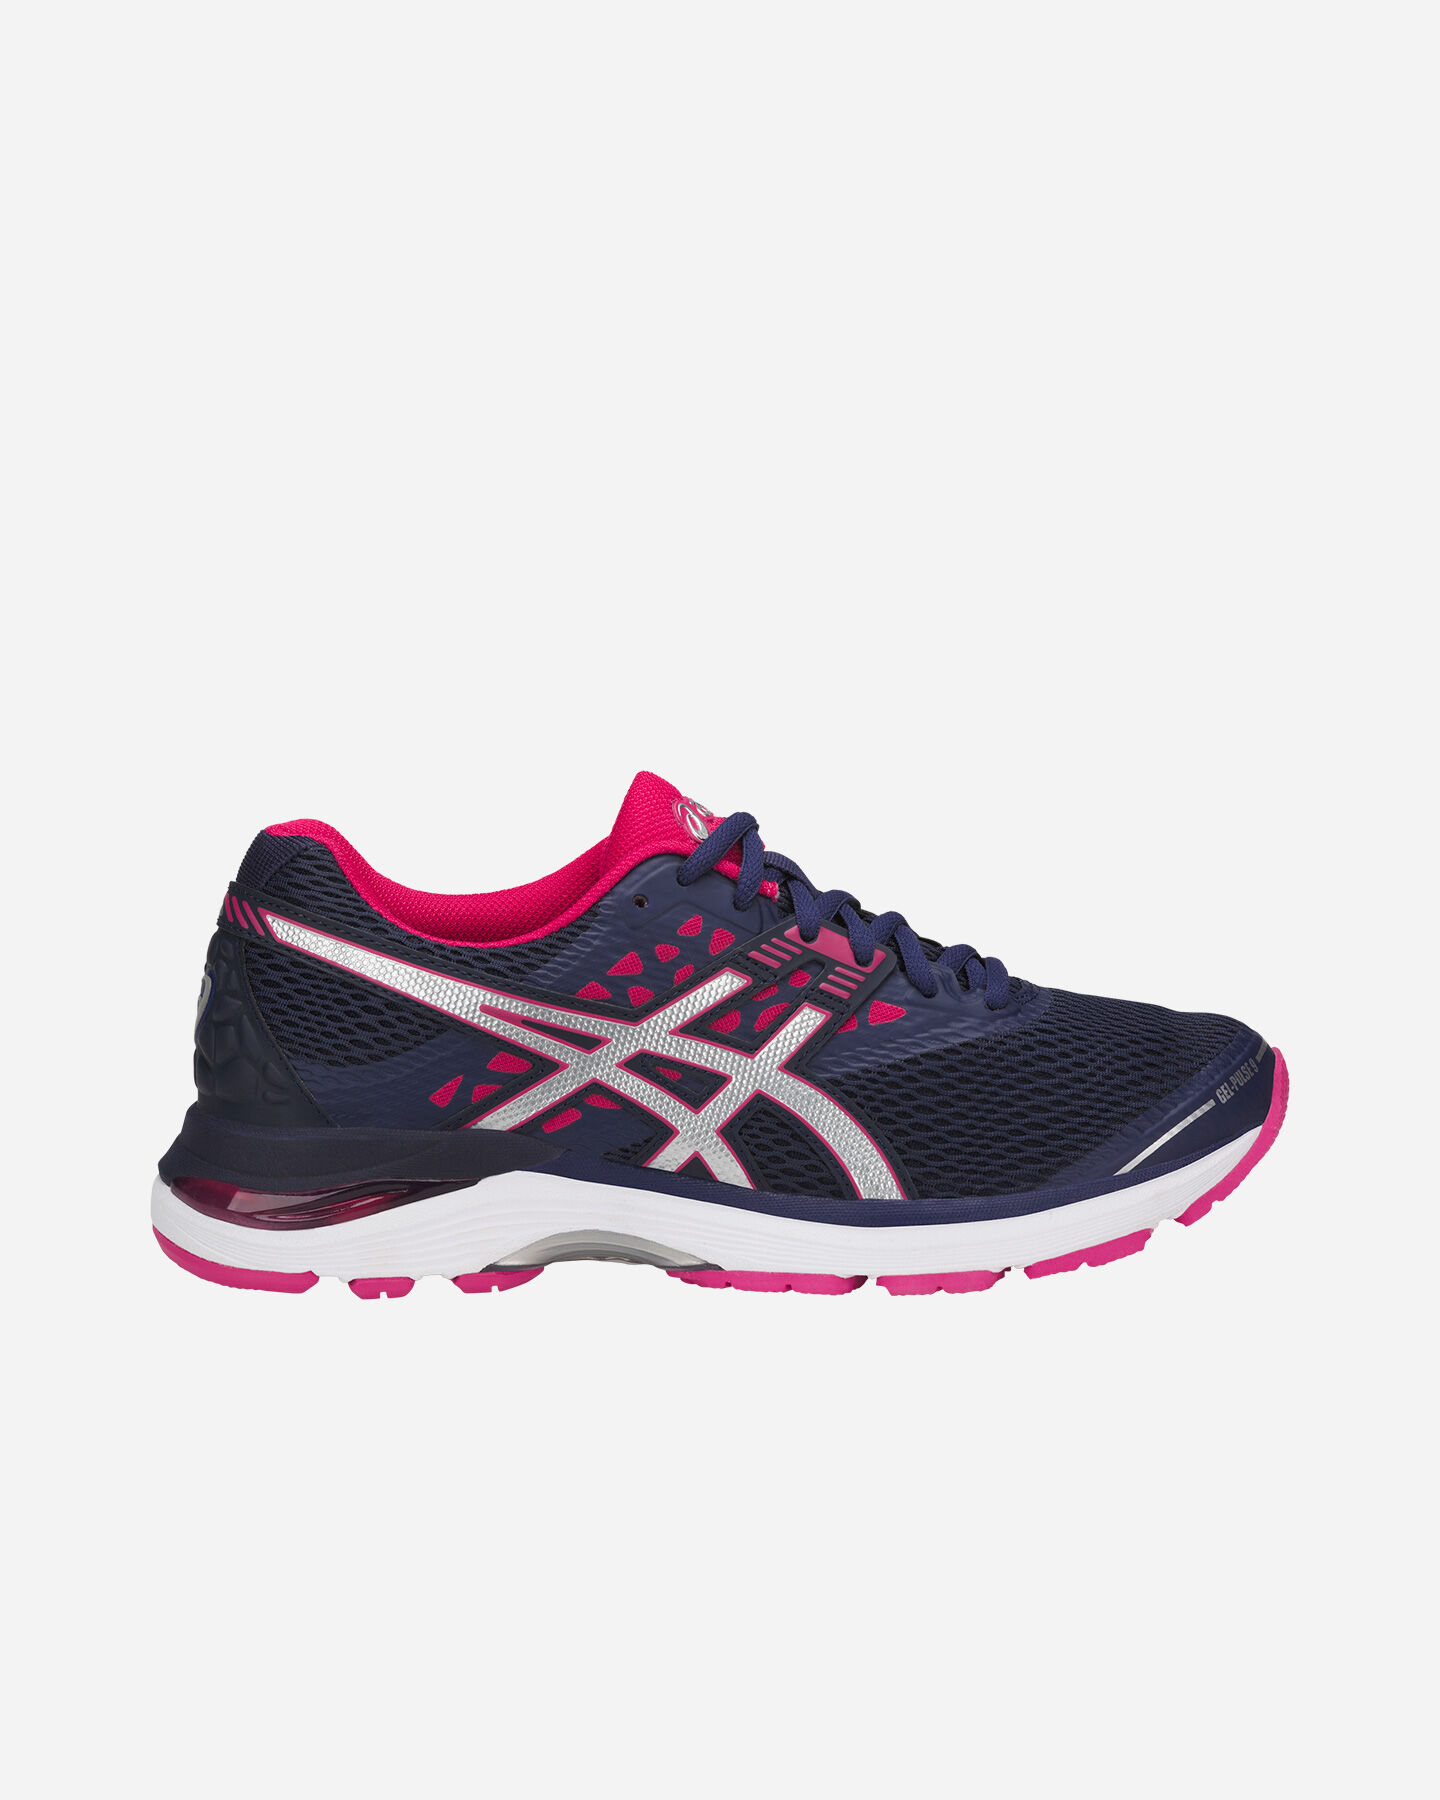 TG.38 Asics Gel Pulse 9 Scarpe Running Donna